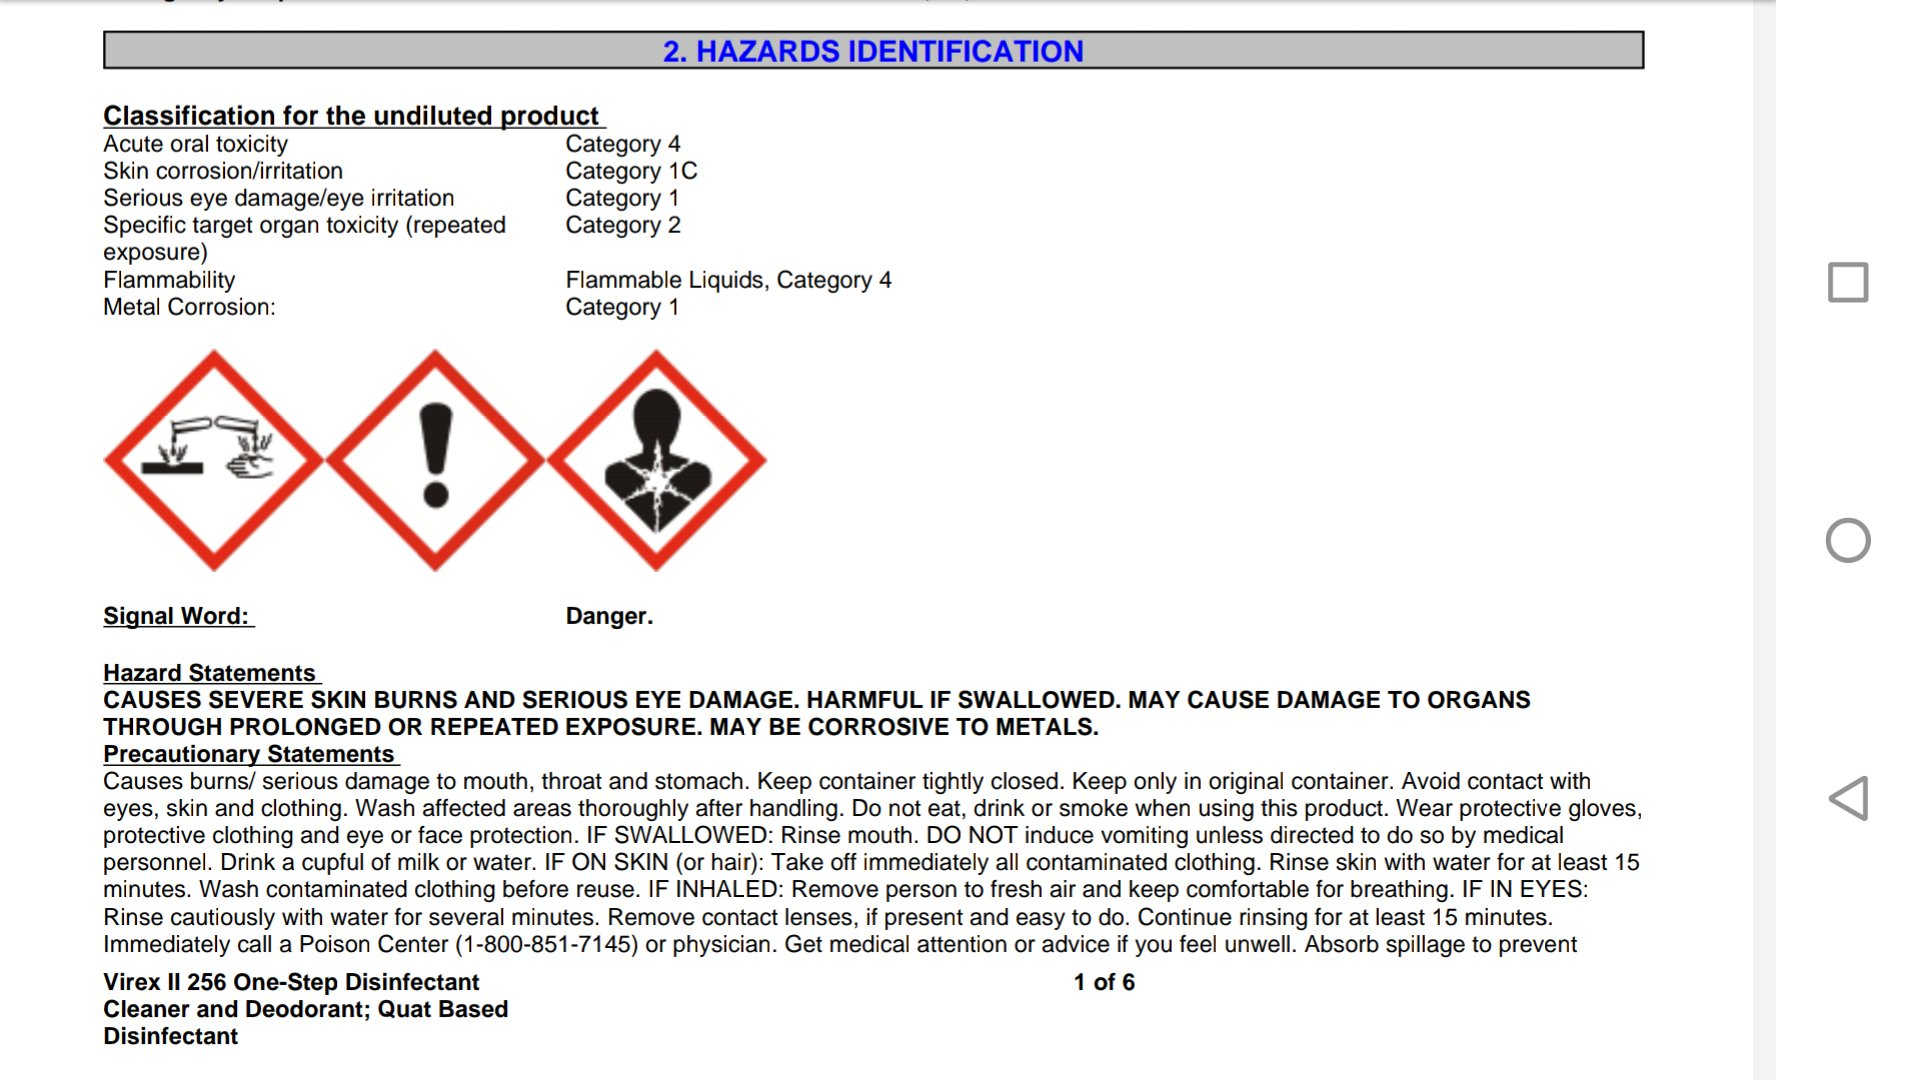 Dj Tim Kai On Twitter I Looked For And Found The Safety Sheet For Virex Ii 256 The Cleaning Agent Mentioned In The Article It Shares Ingredients With Scrubbing Bubbles Lysol